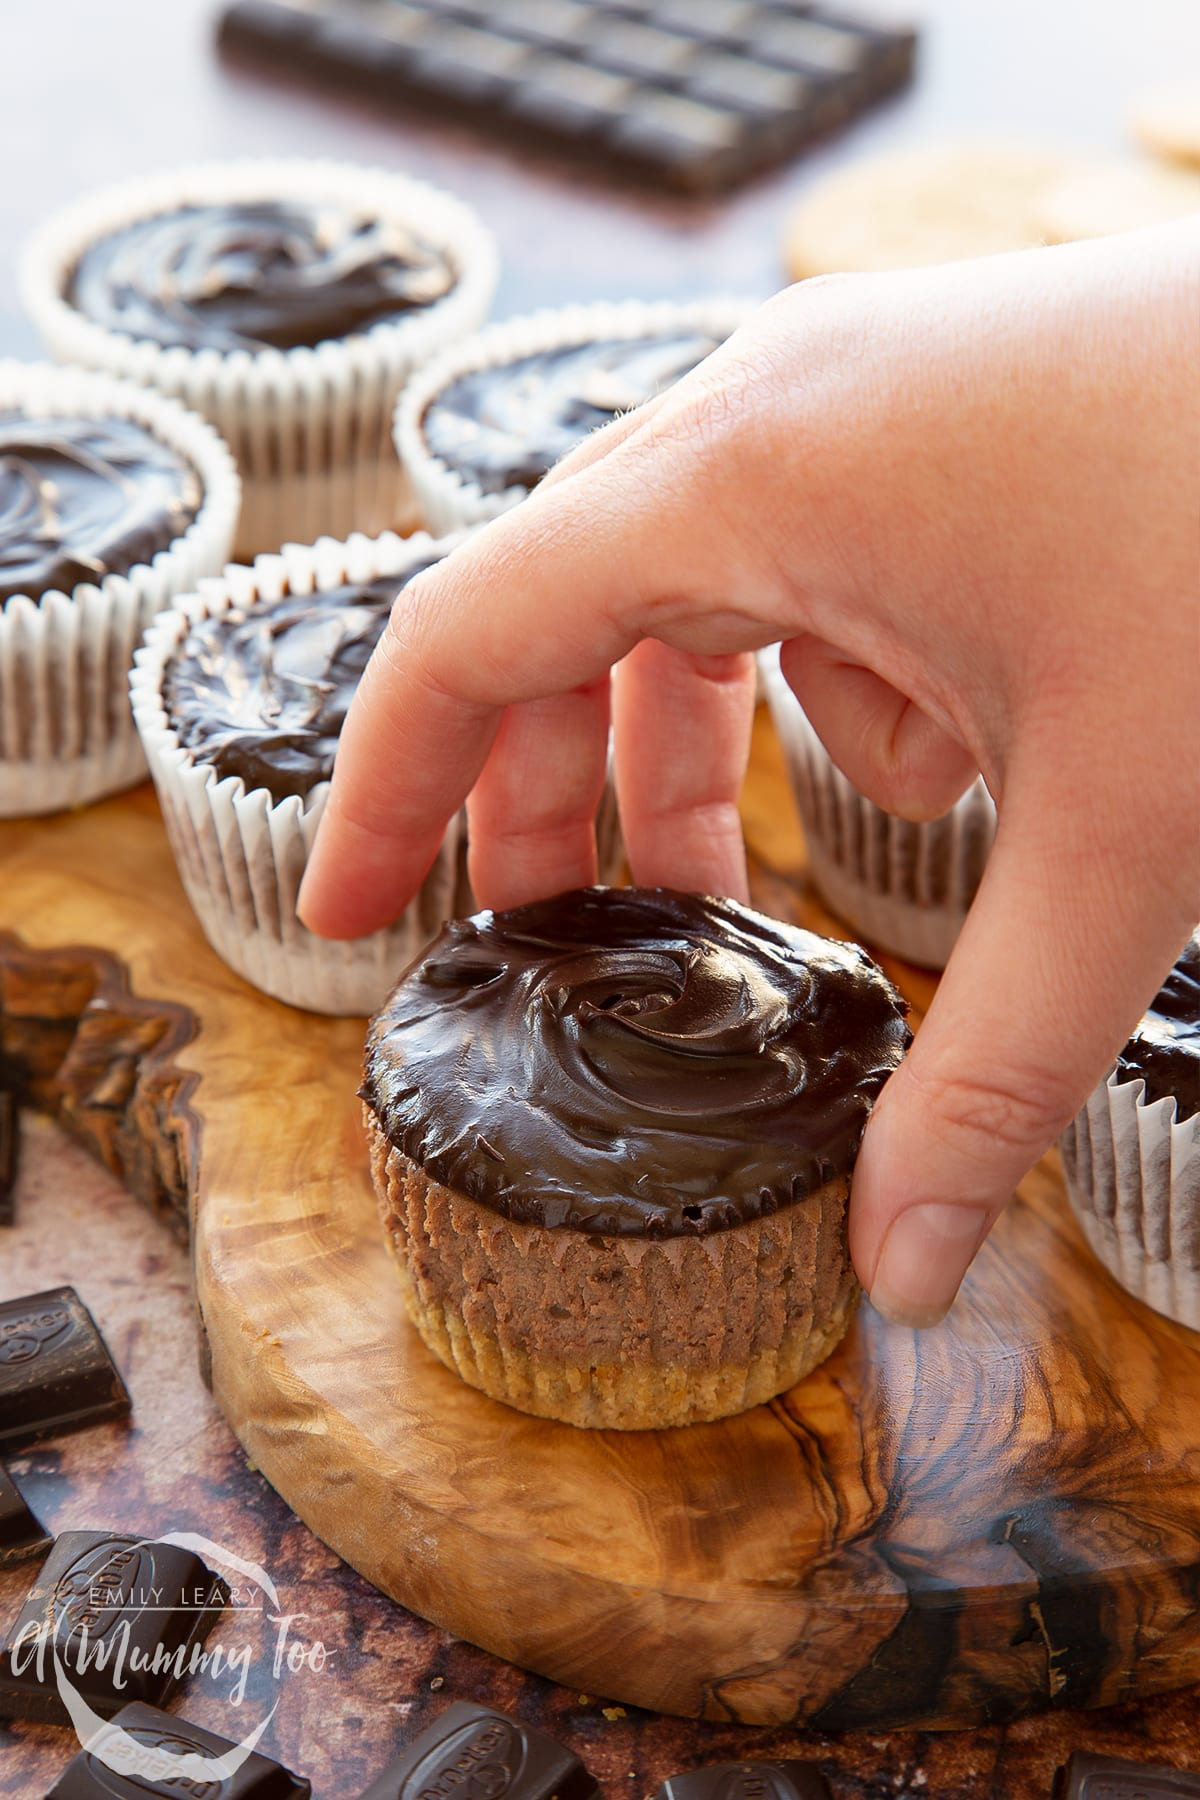 Chocolate cheesecake cupcakes in rows on an olive wood board. The one in the foreground has been unwrapped and a hand reaches for it.